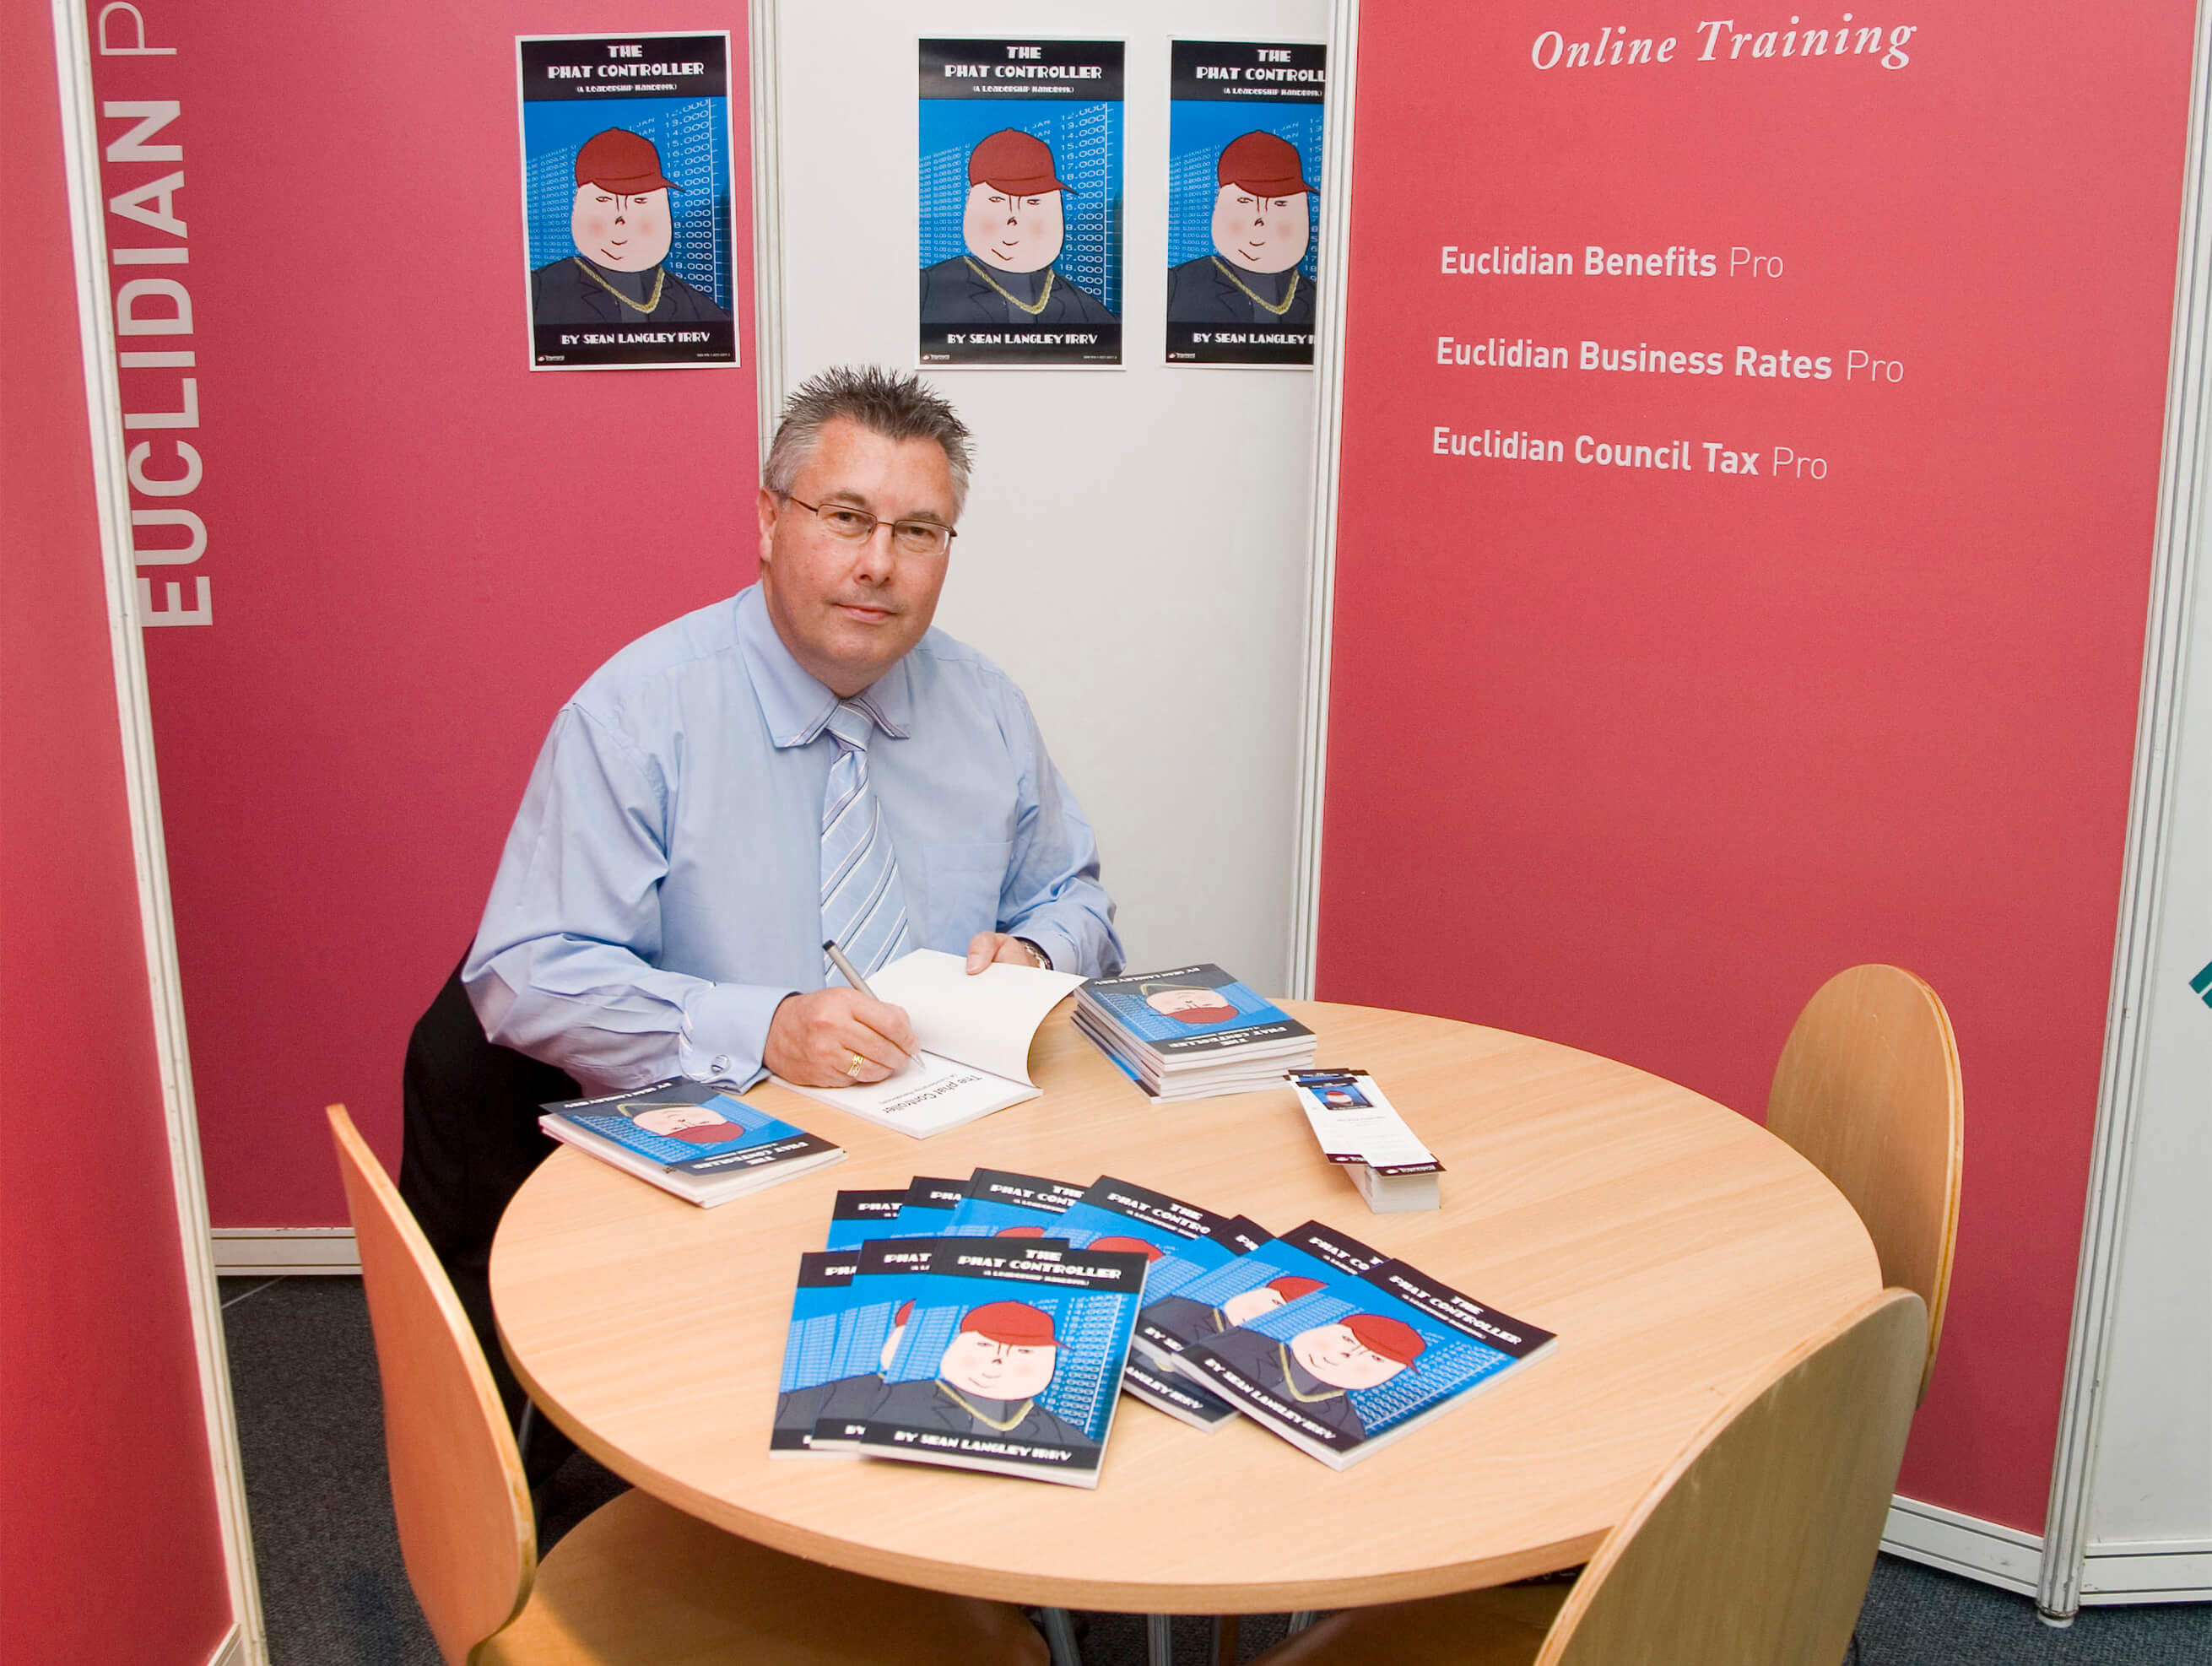 Sean Langley at The Phat Controller Book Signing